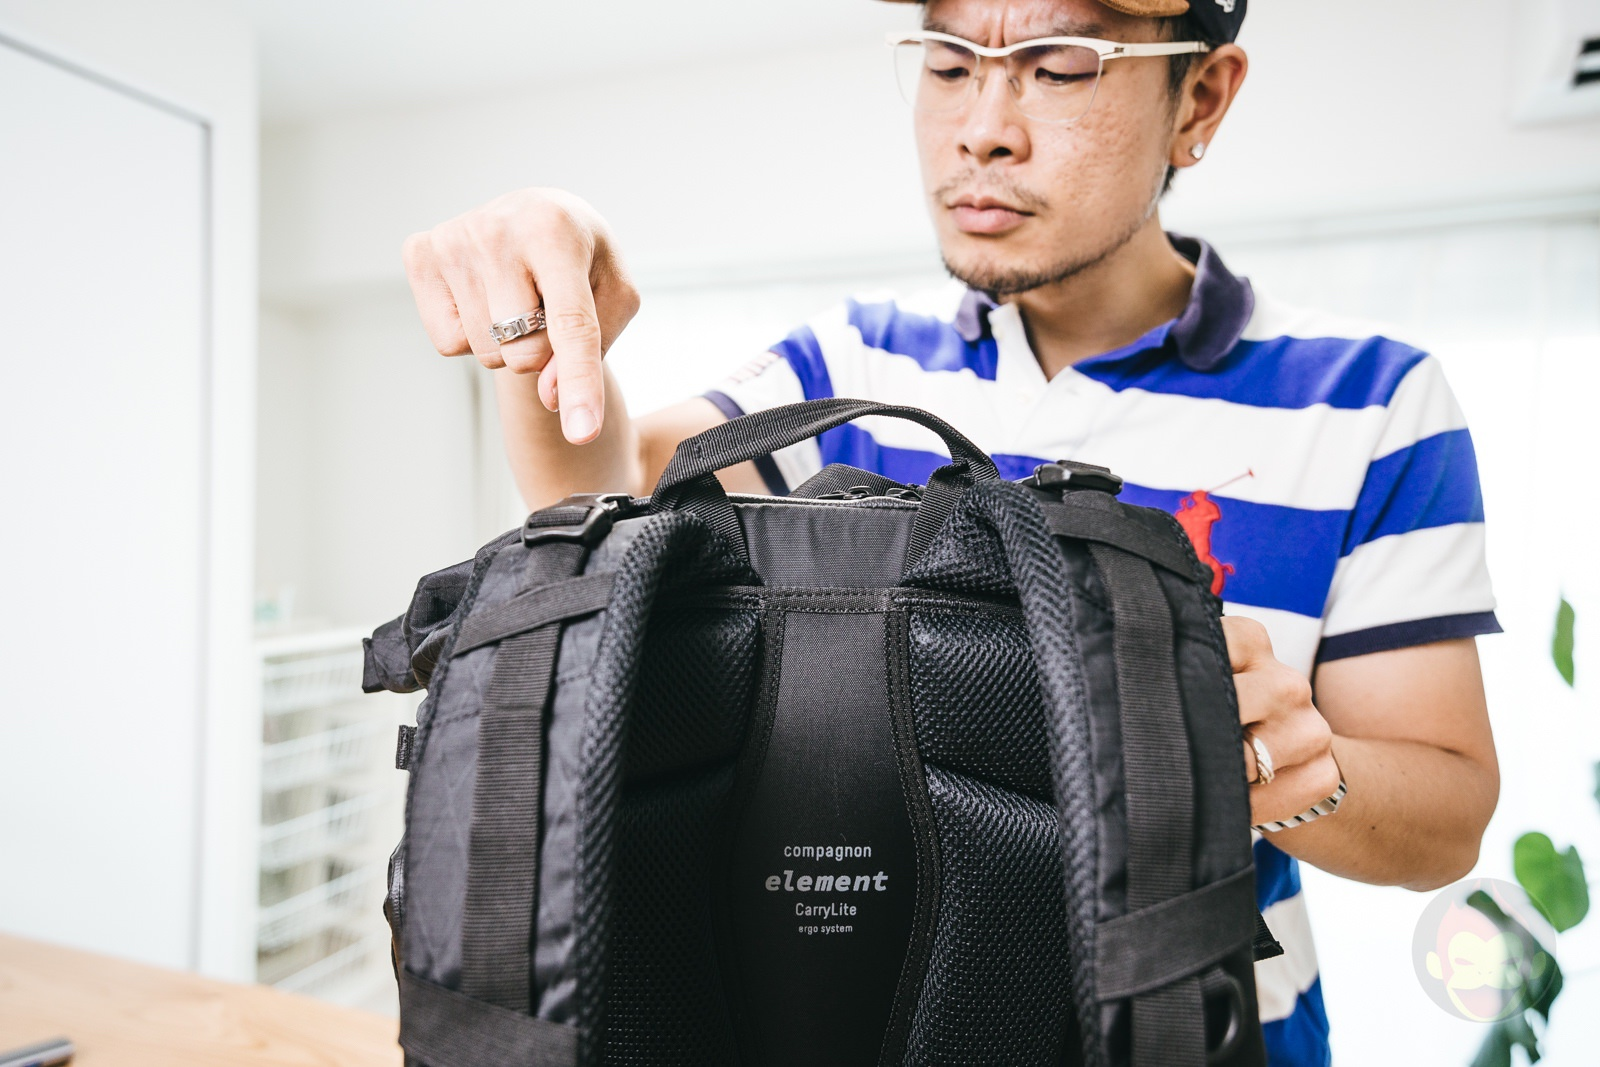 Compagnon element bacpack review 17